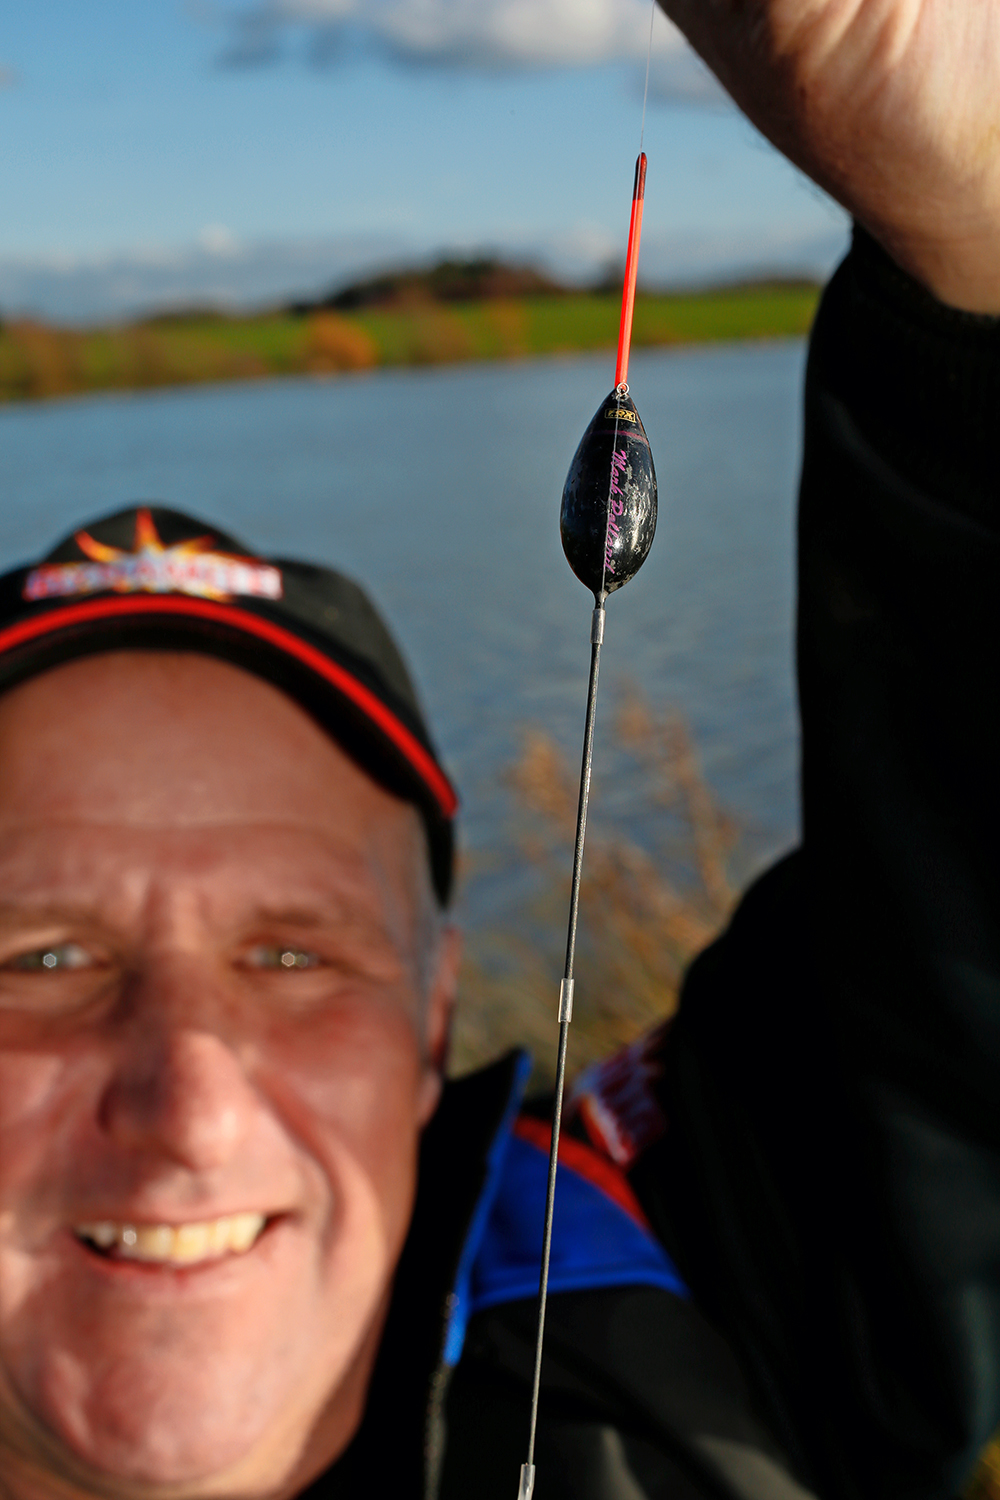 Mark chooses a heavier than normal float so he can maintain control on big, open waters